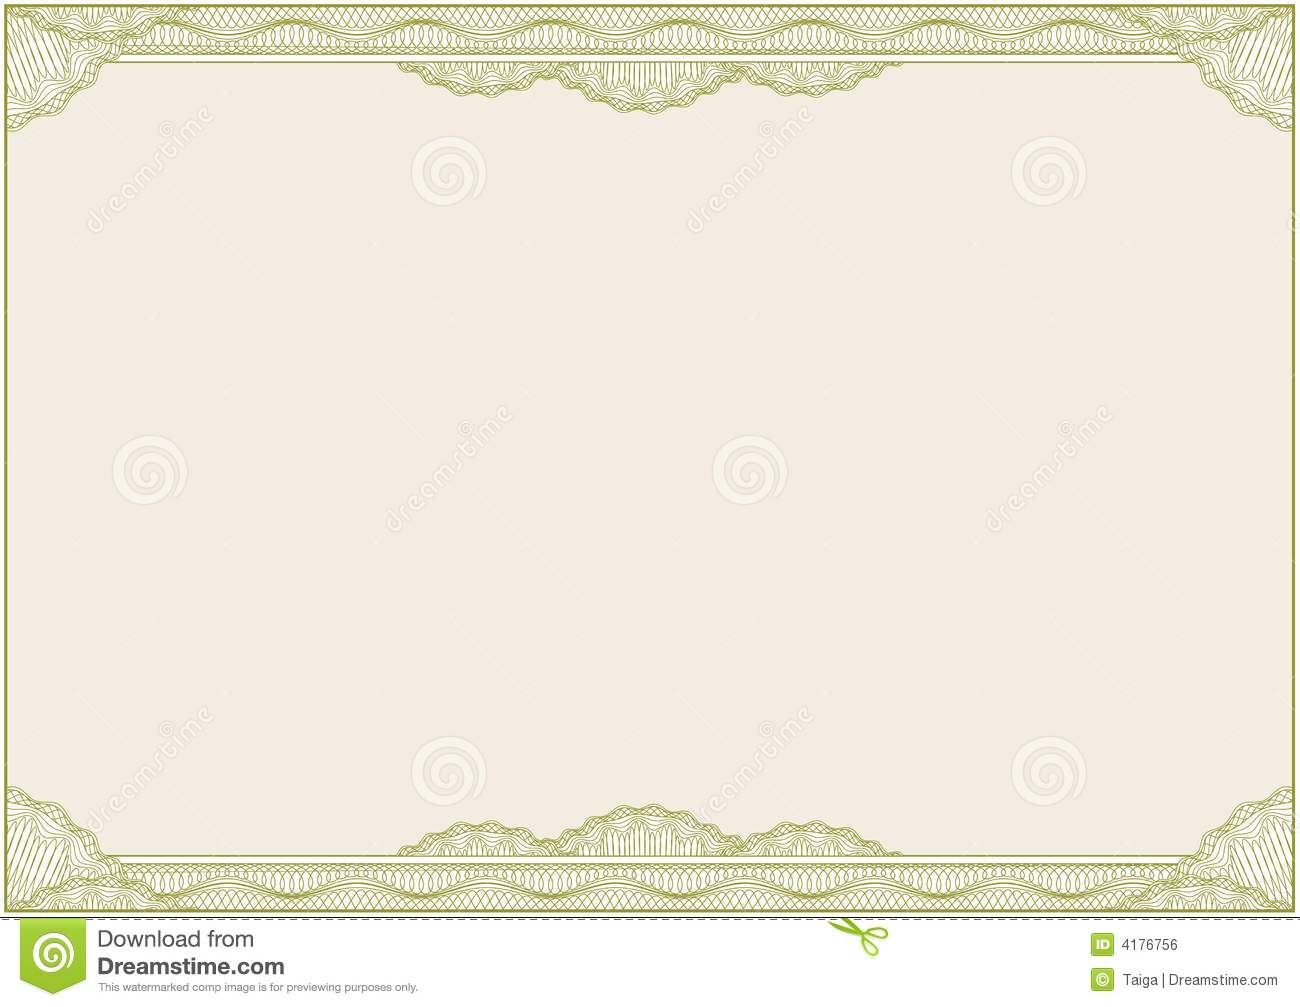 Diploma or certificate border a4 vector stock vector diploma or certificate border a4 vector royalty free stock photo yadclub Choice Image